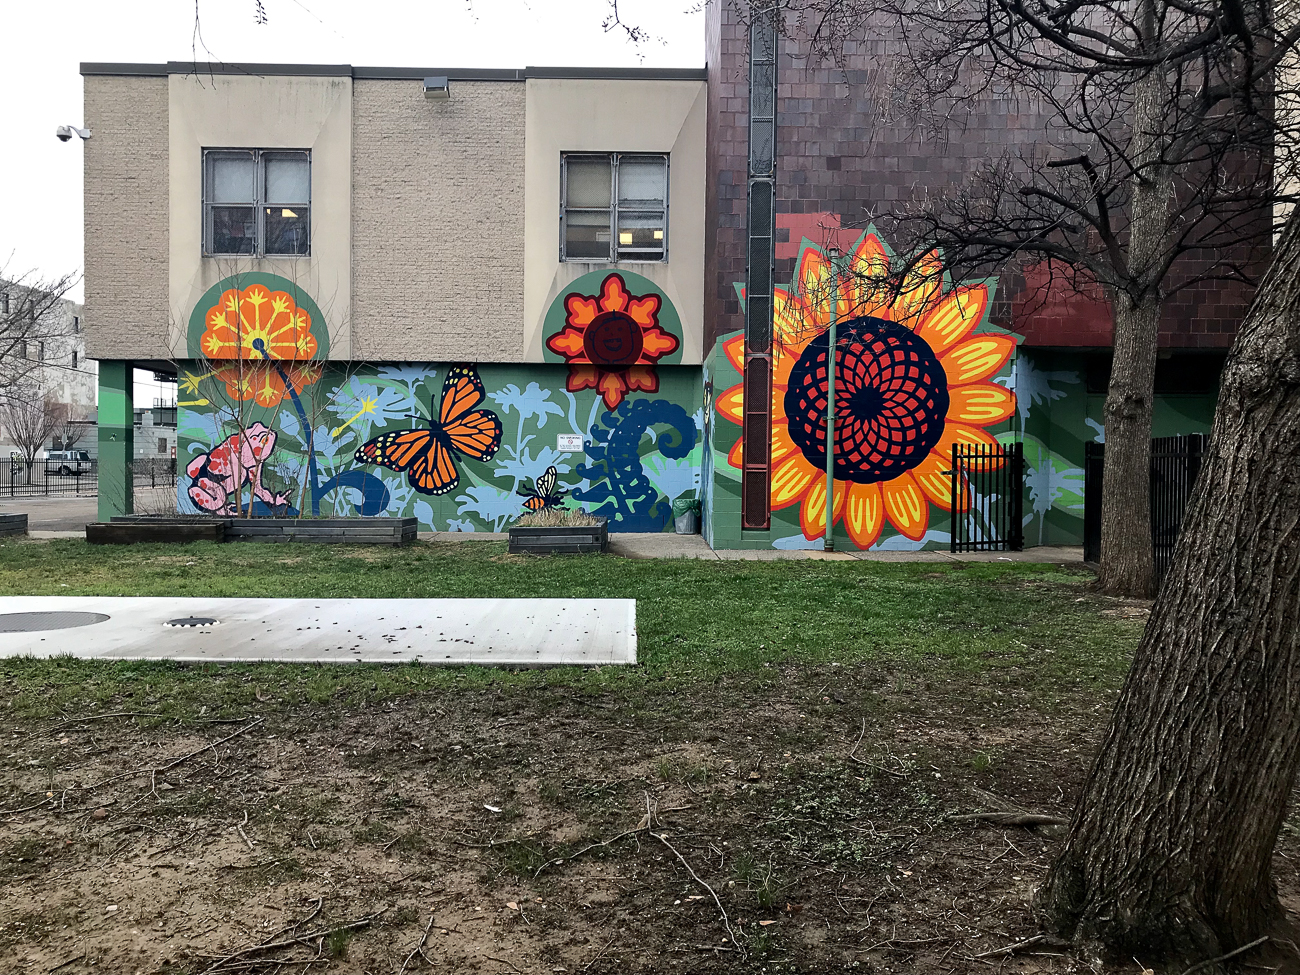 LOCATION: John Moffet Elementary School / NEIGHBORHOOD: Kensington (Northern Philly) / Image: Tiffany Hudson // Published: 4.6.18